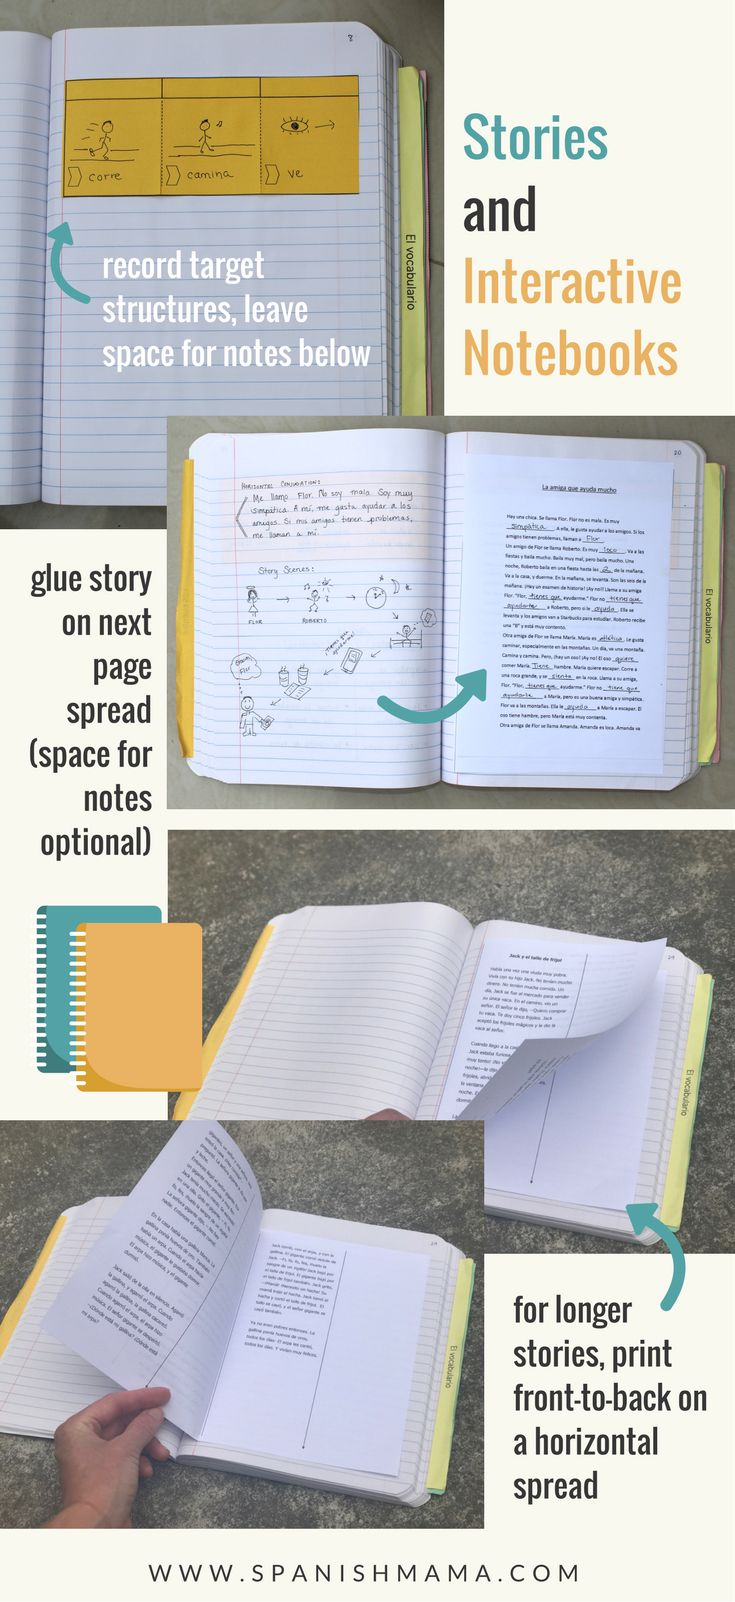 Example of how stories (or TPRS) can be easily printed and organized in interactive notebooks in the Spanish classroom. Also includes links to templates for easy formatting and printing to fit into a composition notebooks.